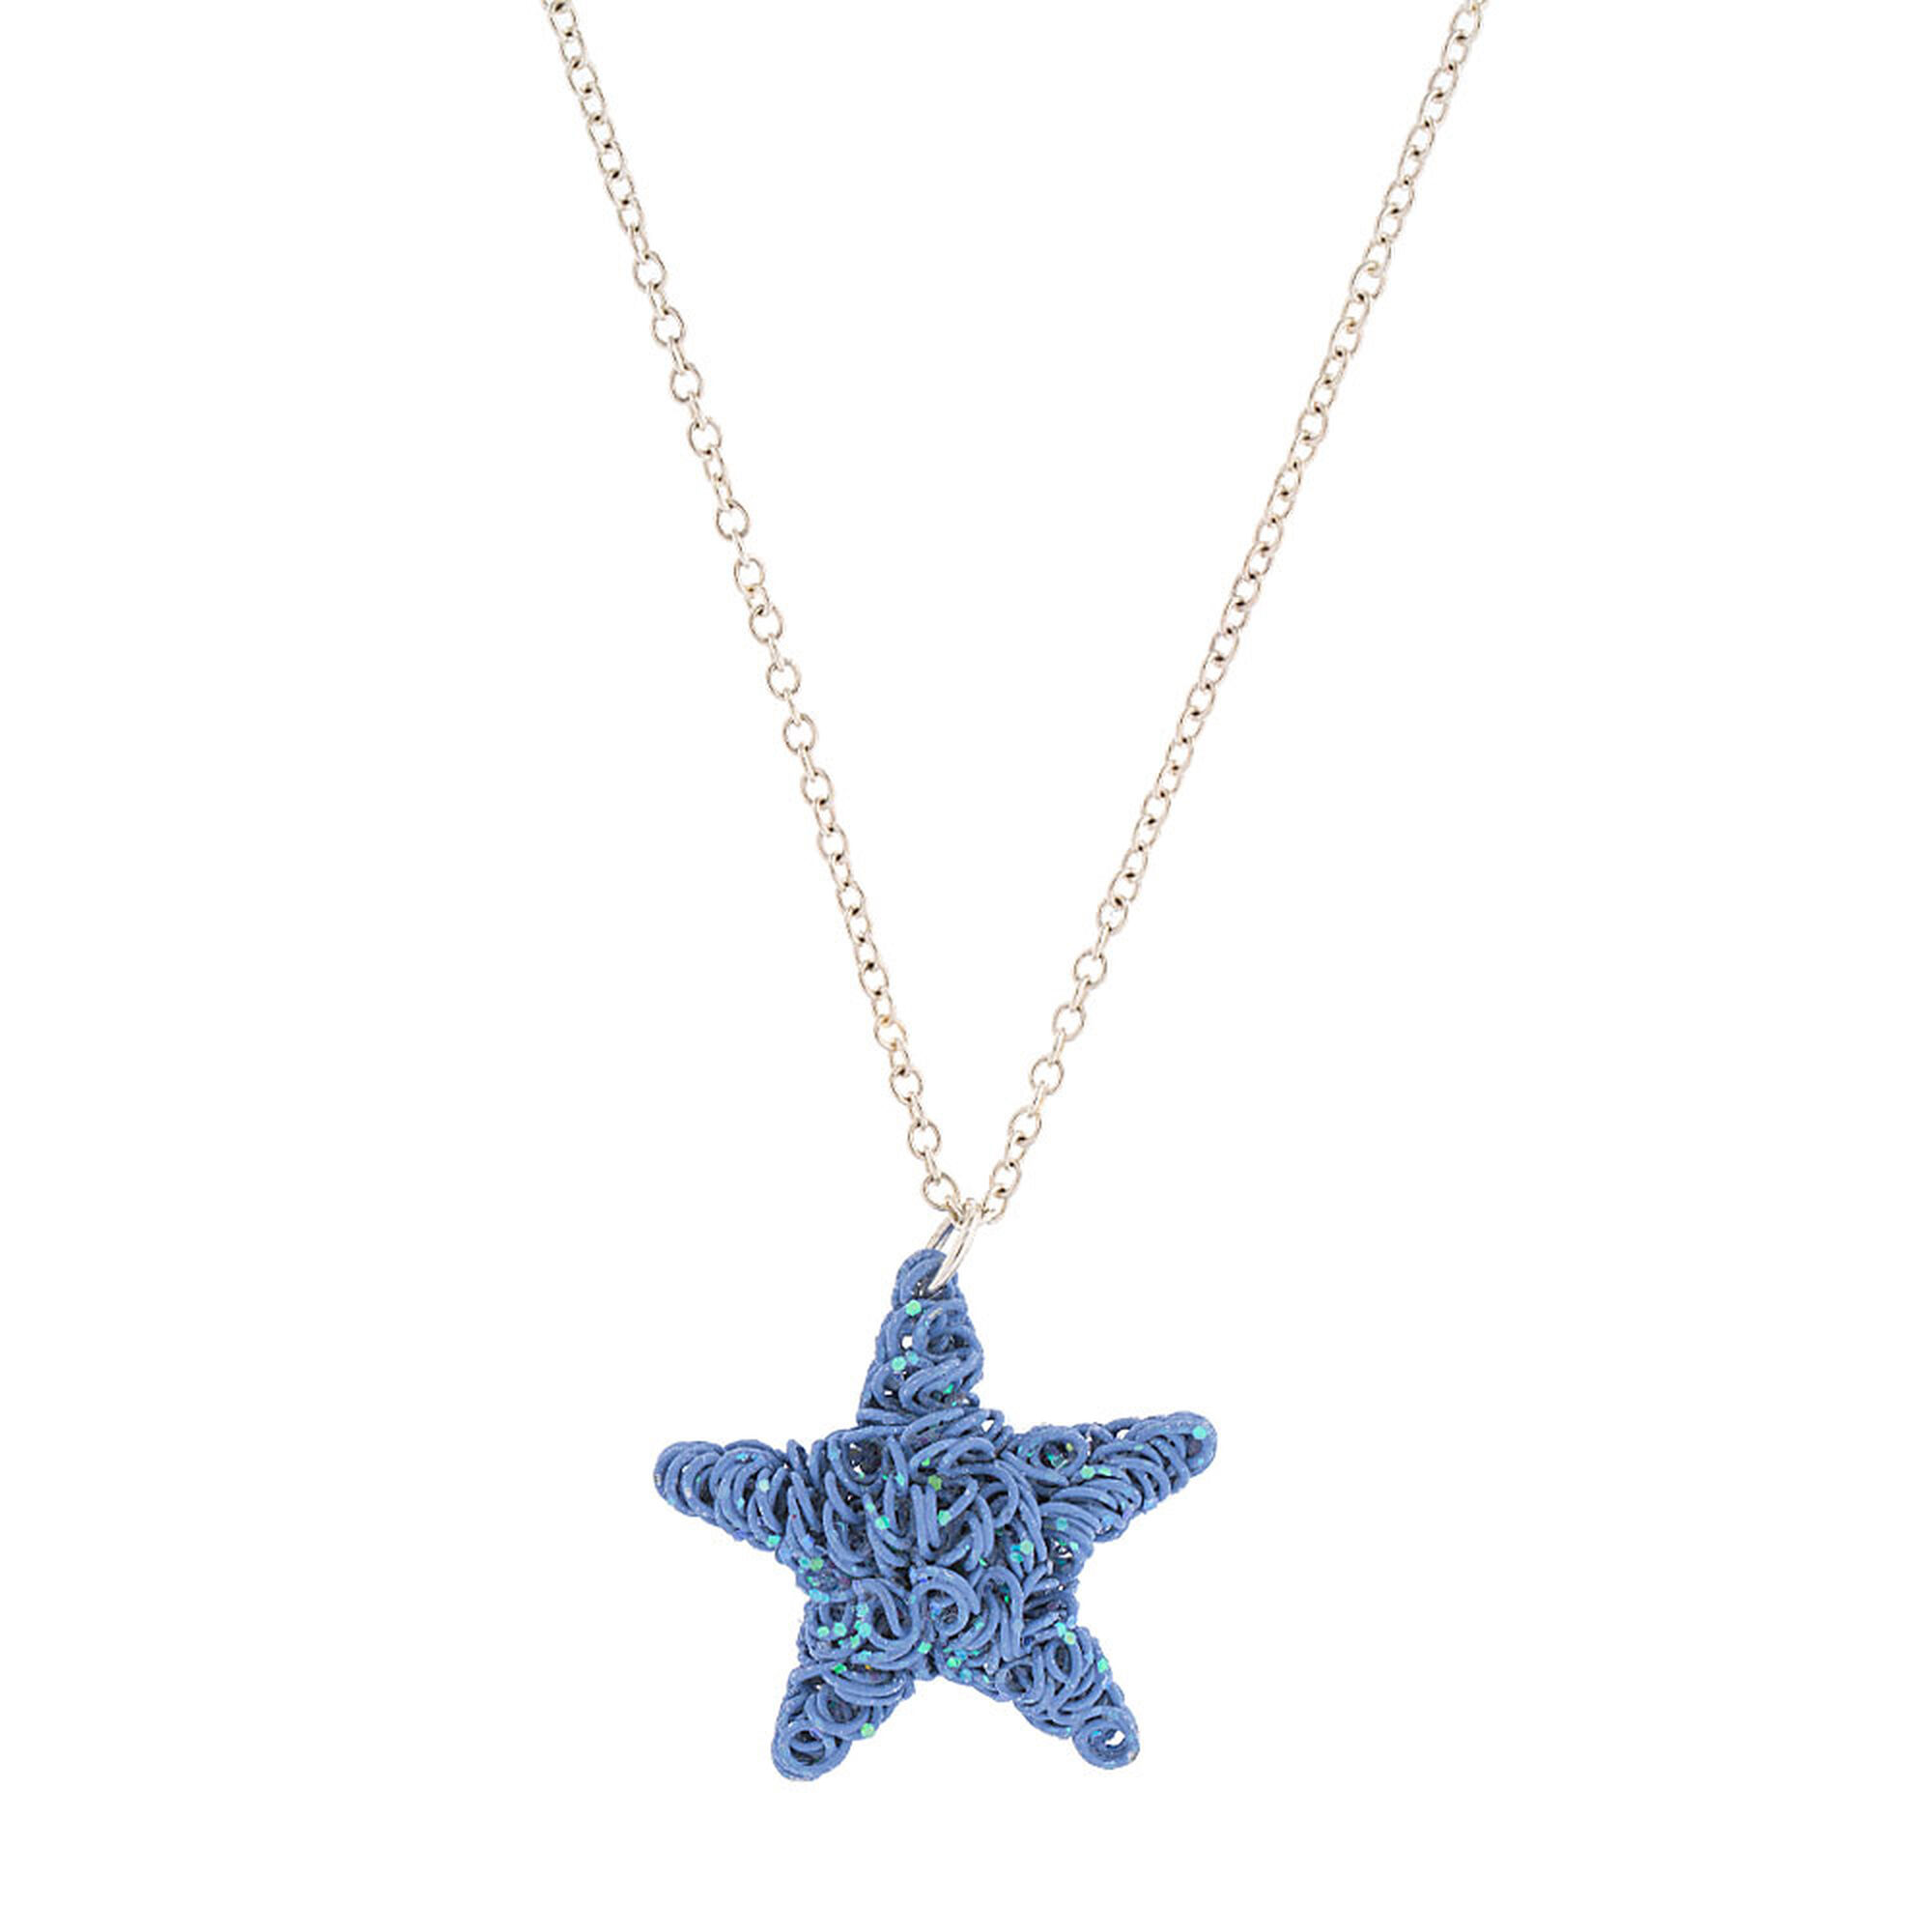 necklace blue m star poshmark jewelry listing lee silver pendant fish cookie